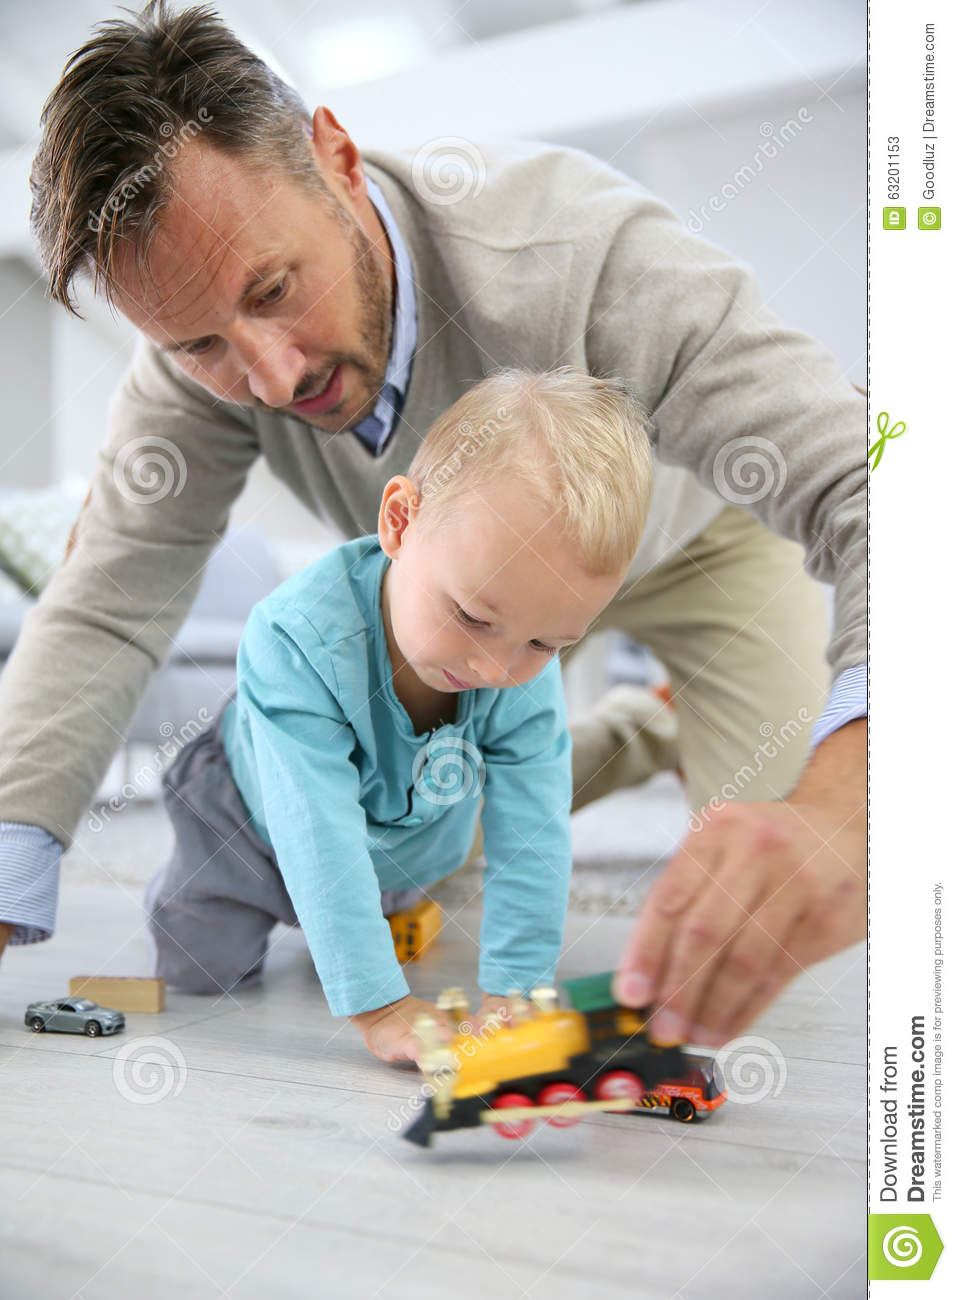 Boy Toys For Dads : Father and son playing with toy cars on the floor stock